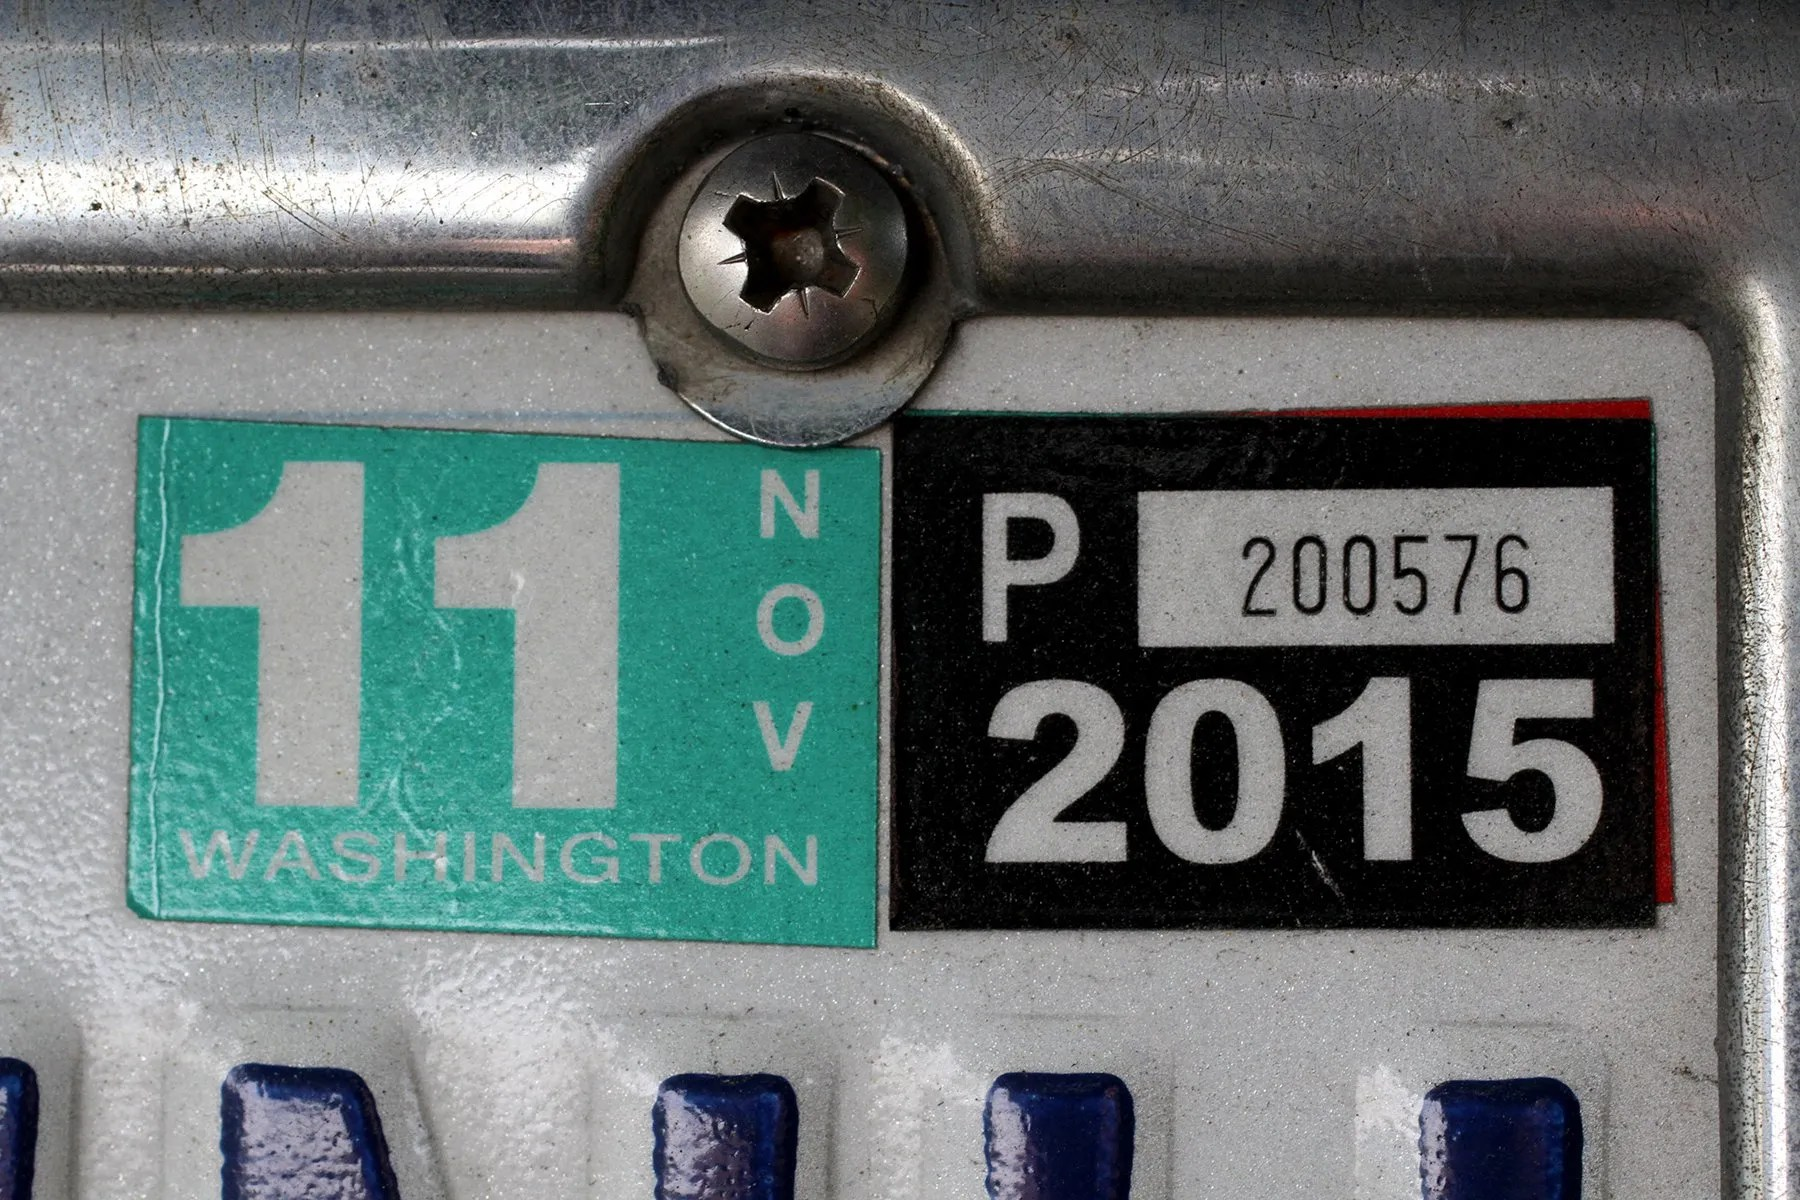 Sticker shock as much higher car-tab bills land in mailboxes The